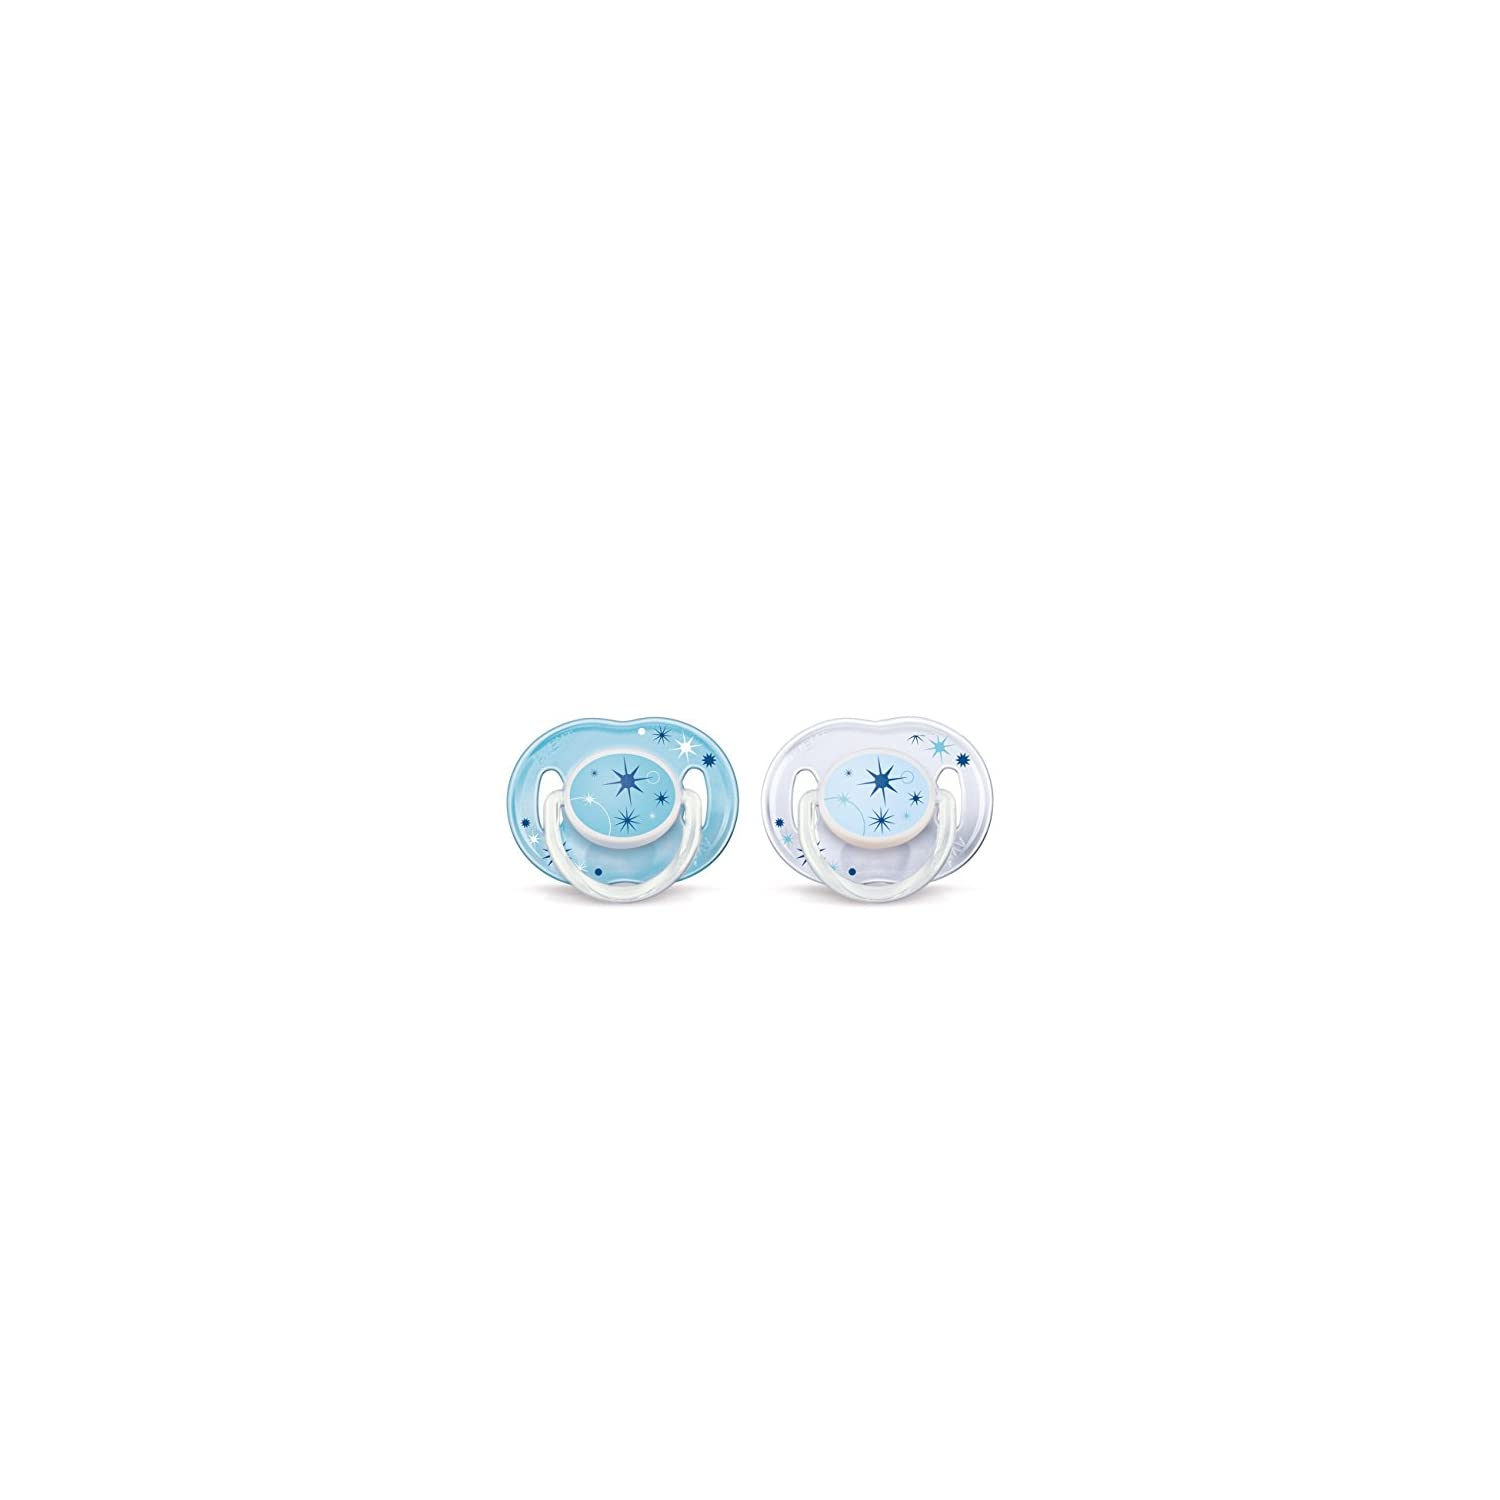 Philips AVENT BPA Free Nighttime Infant Pacifier, 0-6 Months, Colors May Vary, 2-Count